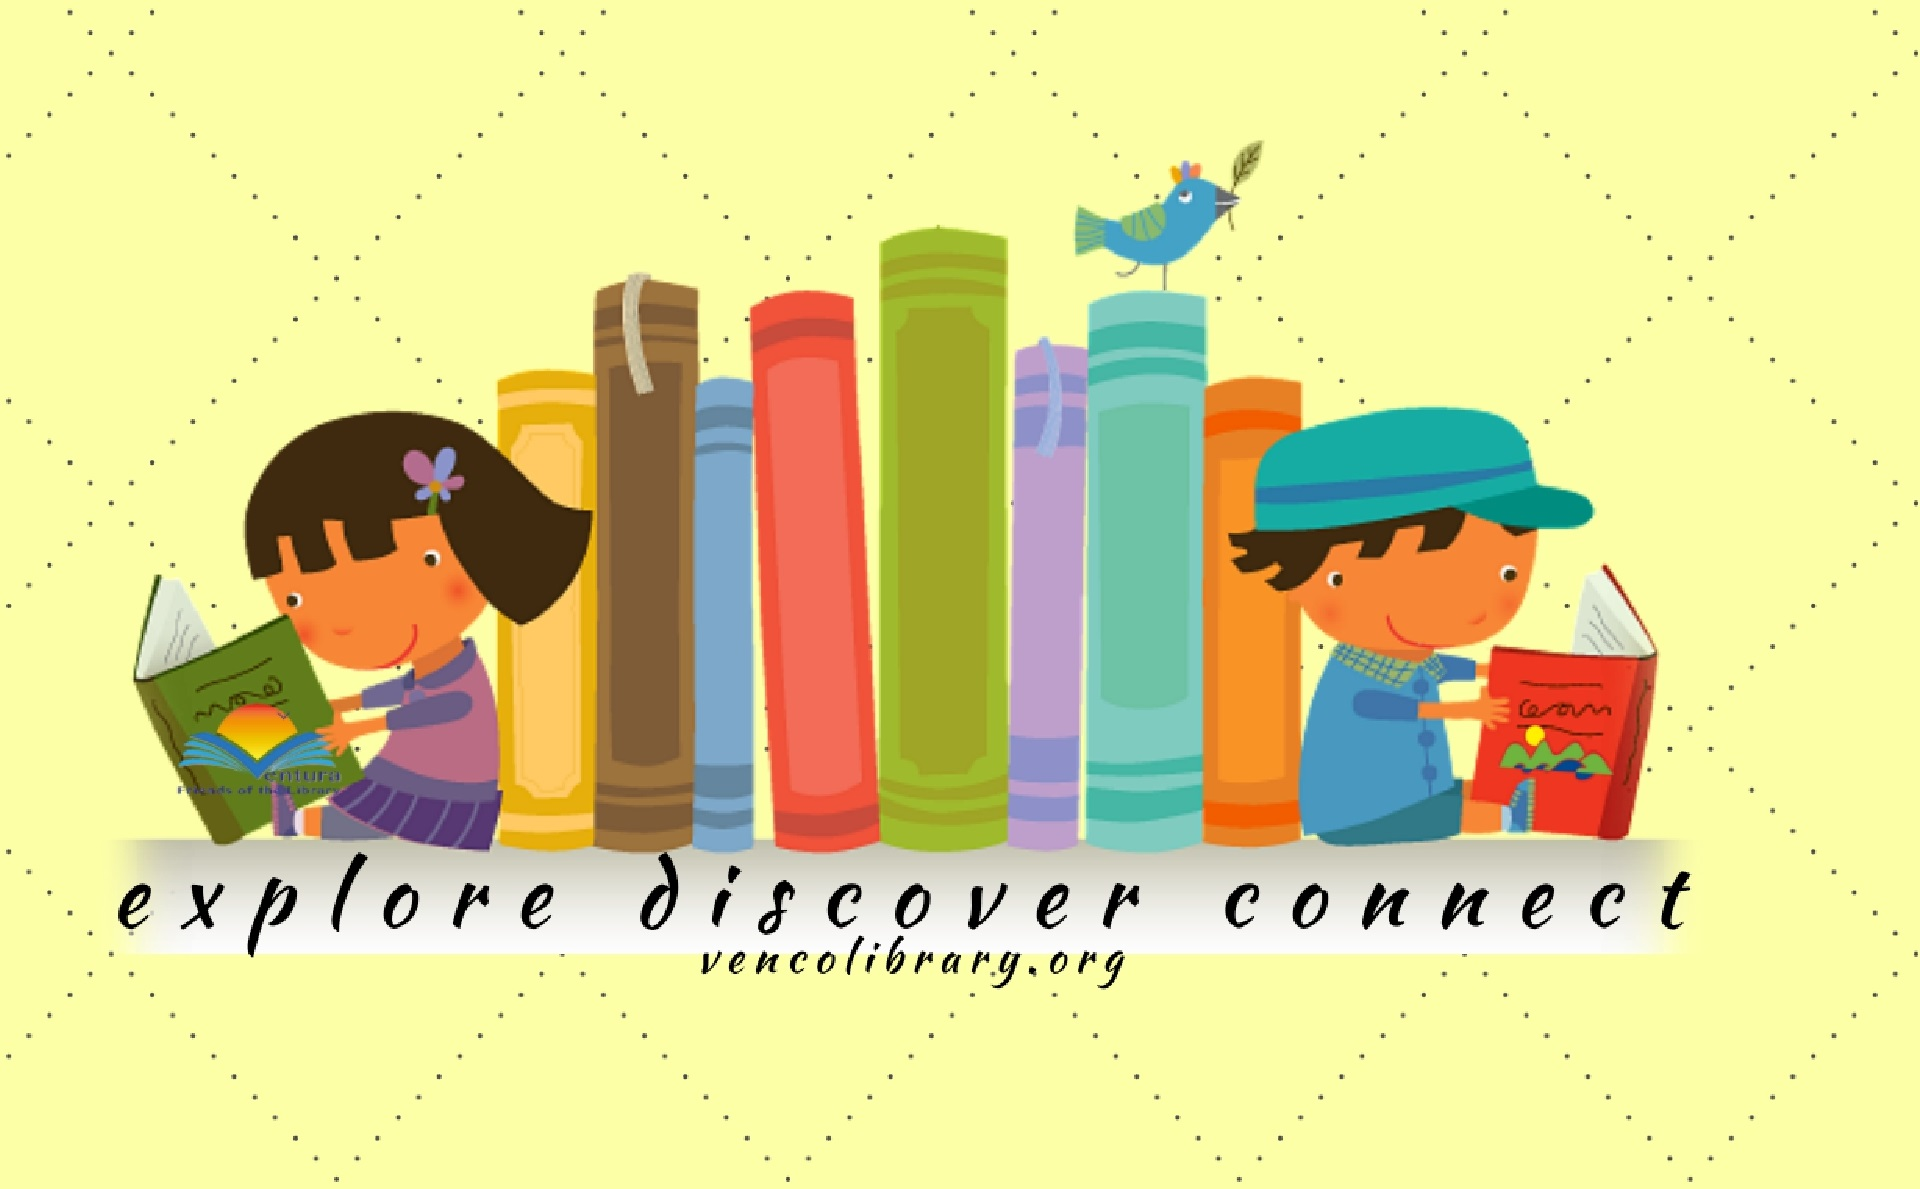 Several multicolored books standing tall, with a little girl and little boy at each end reading a book.  Underneath is the following text:  explore, discover, connect, vencolibrary.org